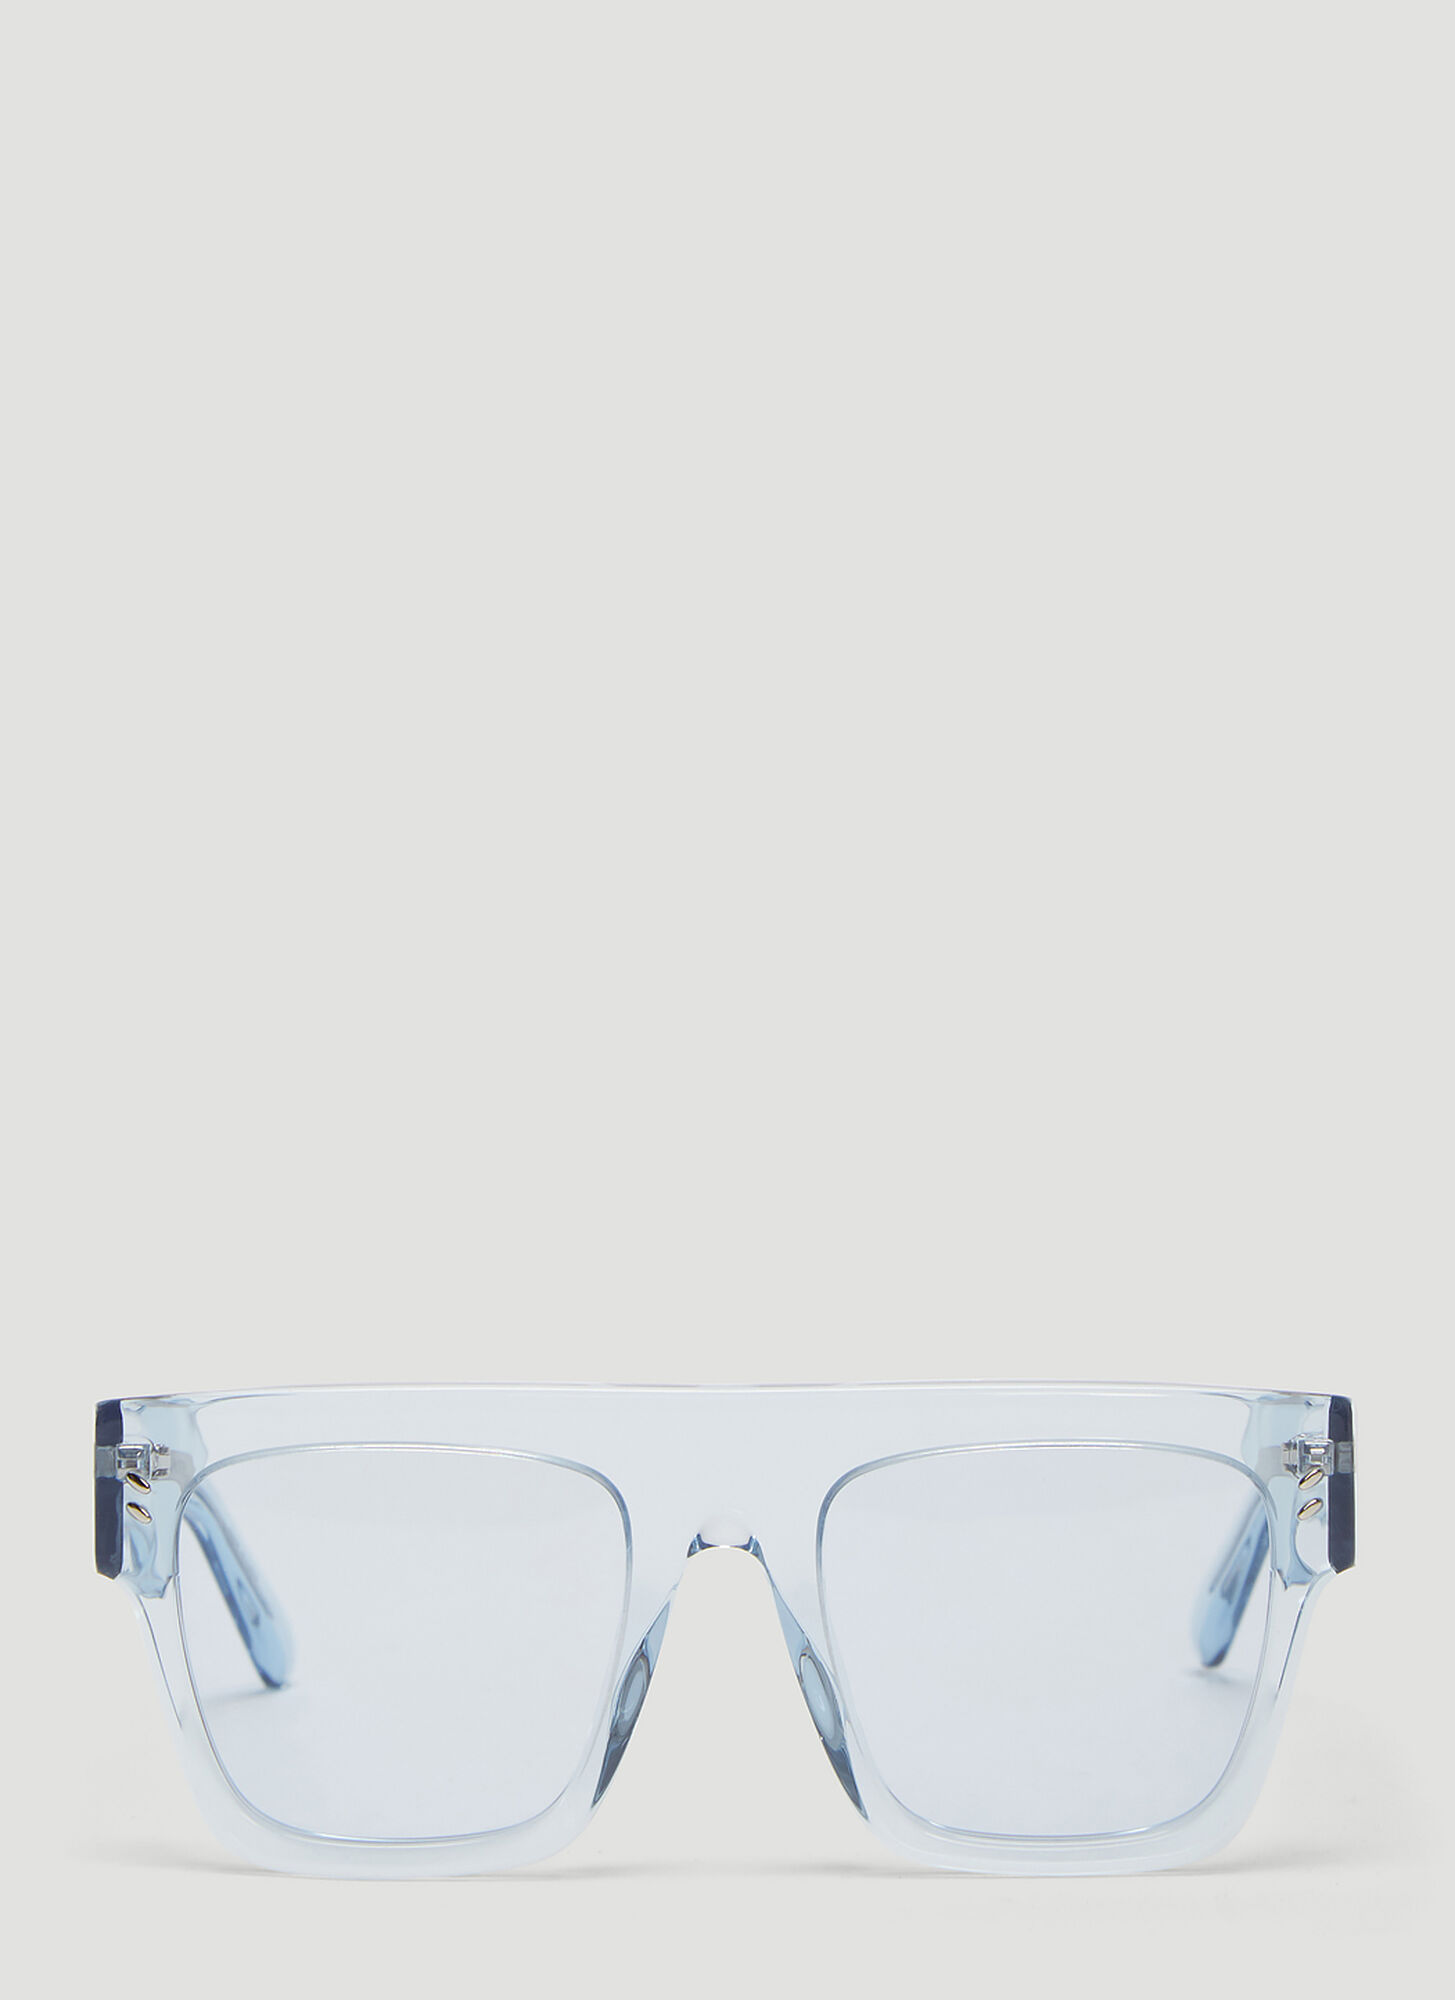 Stella McCartney Square Acetate Sunglasses in Blue